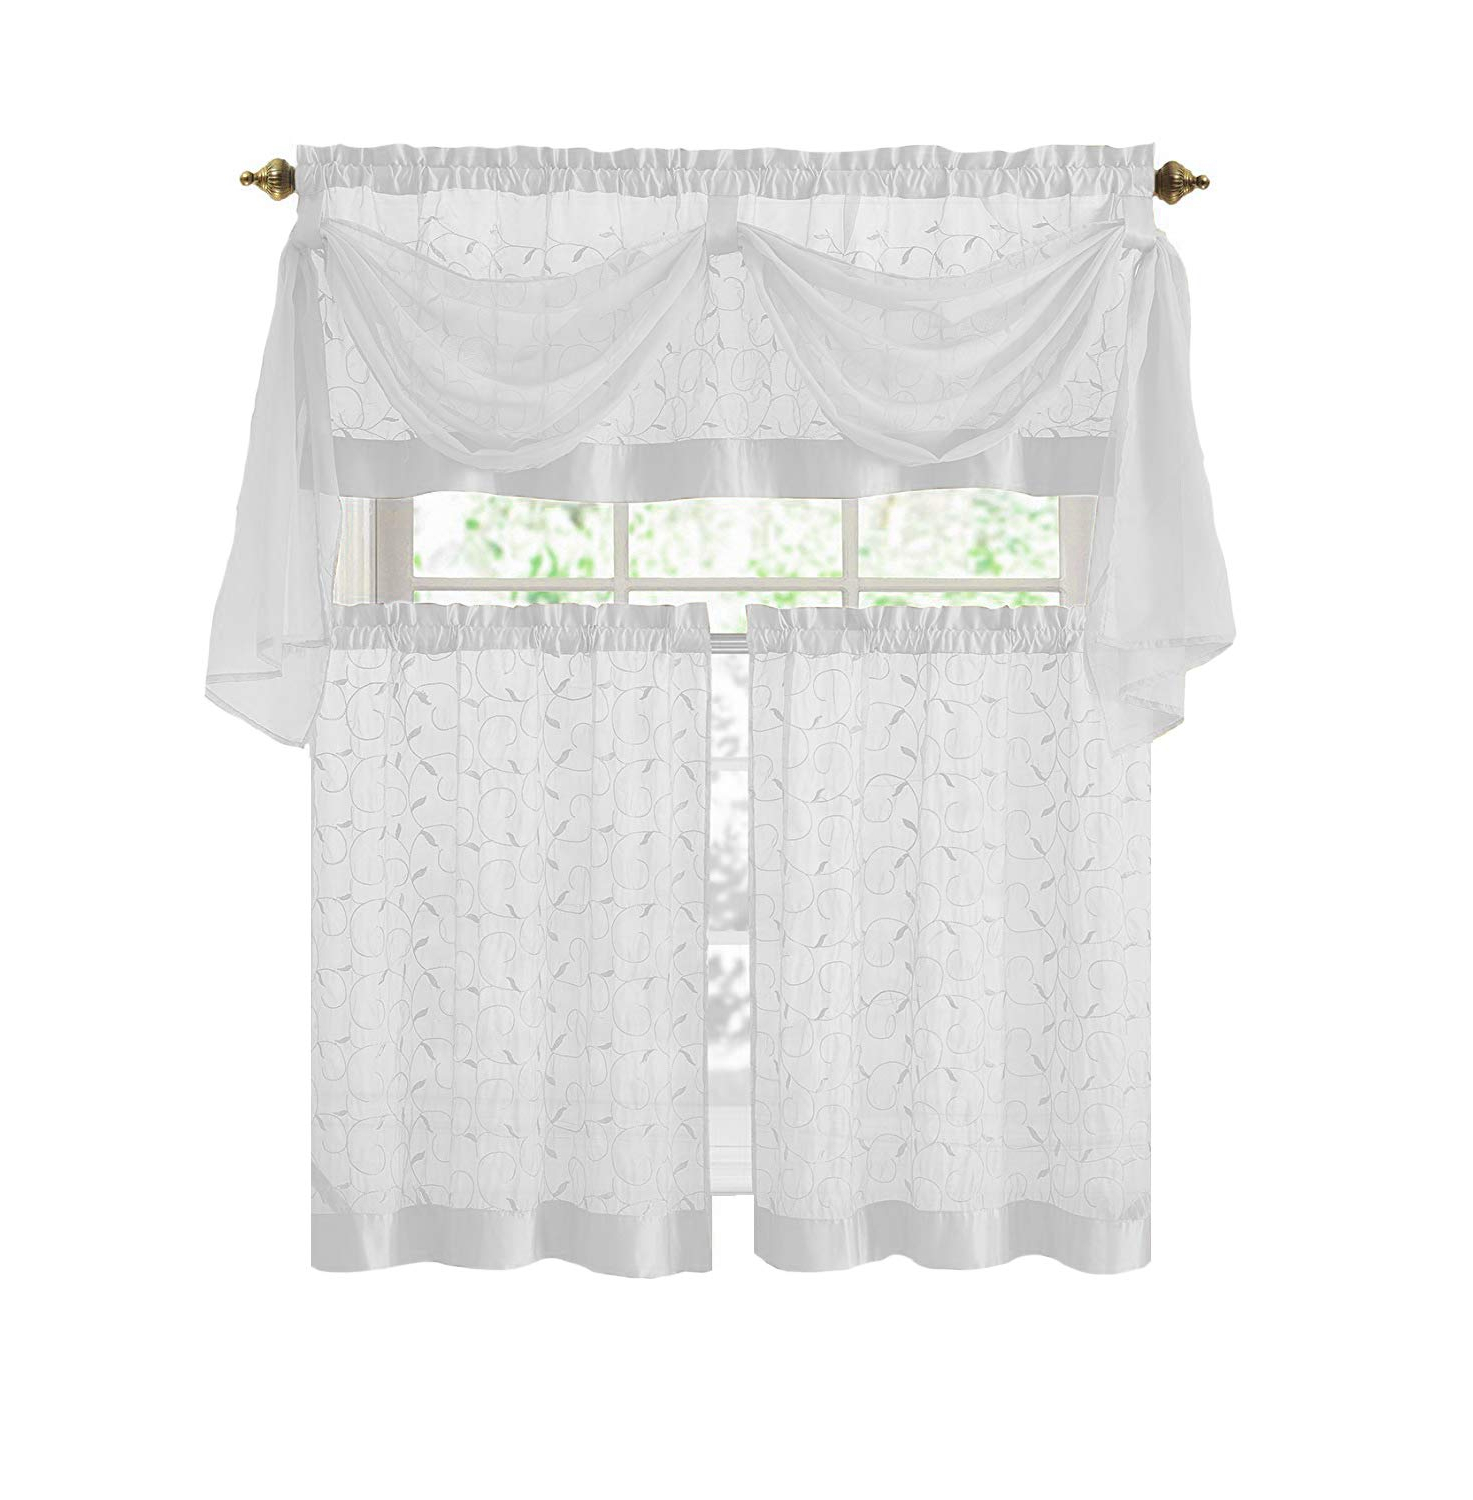 Classic Black And White Curtain Tiers Intended For Popular Victoria Classics Linen Leaf 4 Piece Kitchen Curtain Set (beige) (View 7 of 20)